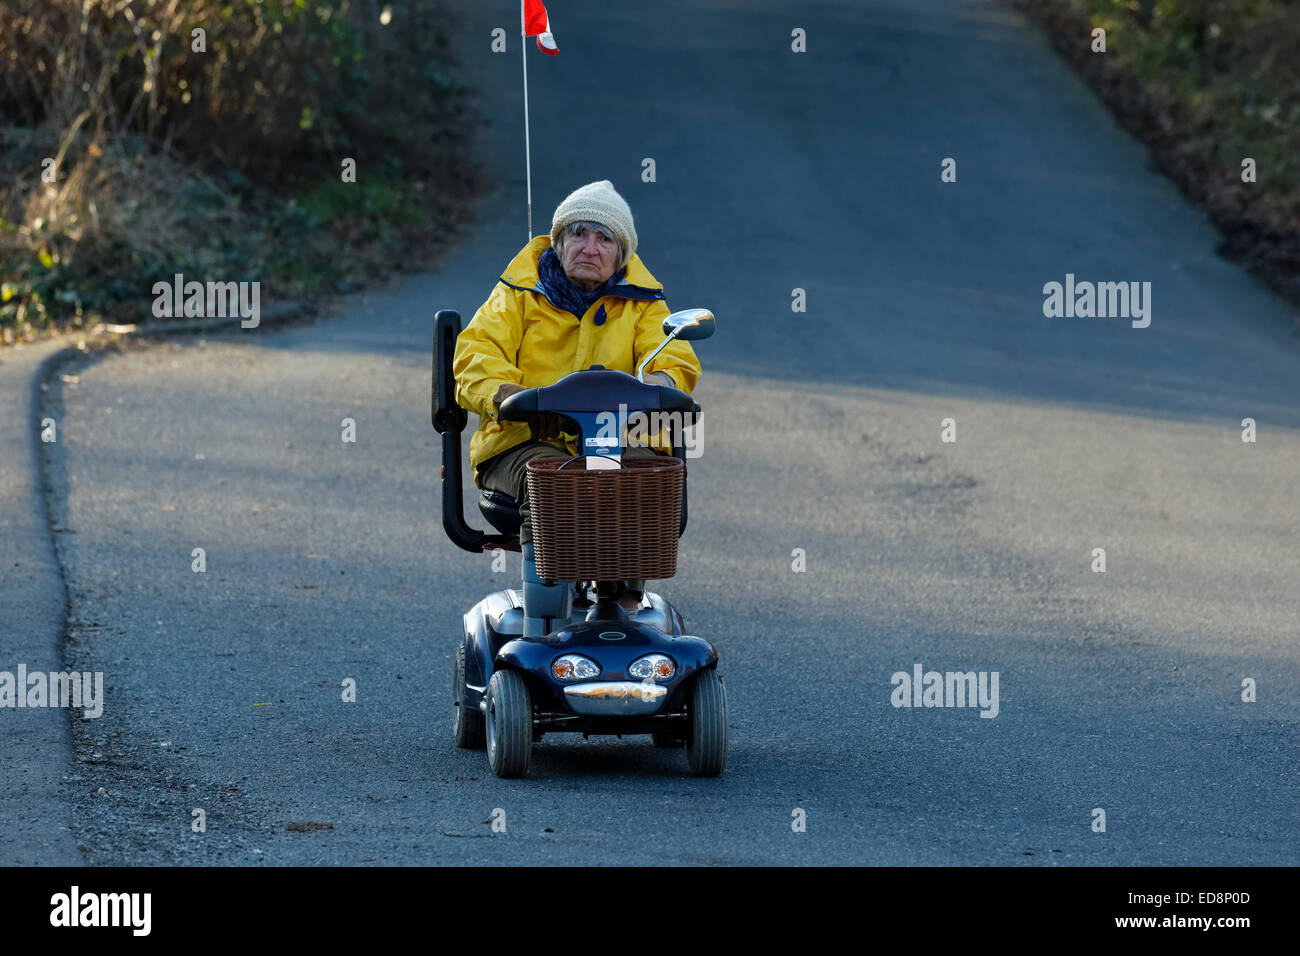 Elderly woman riding motorized medical scooter on road-Victoria, British Columbia, Canada. - Stock Image